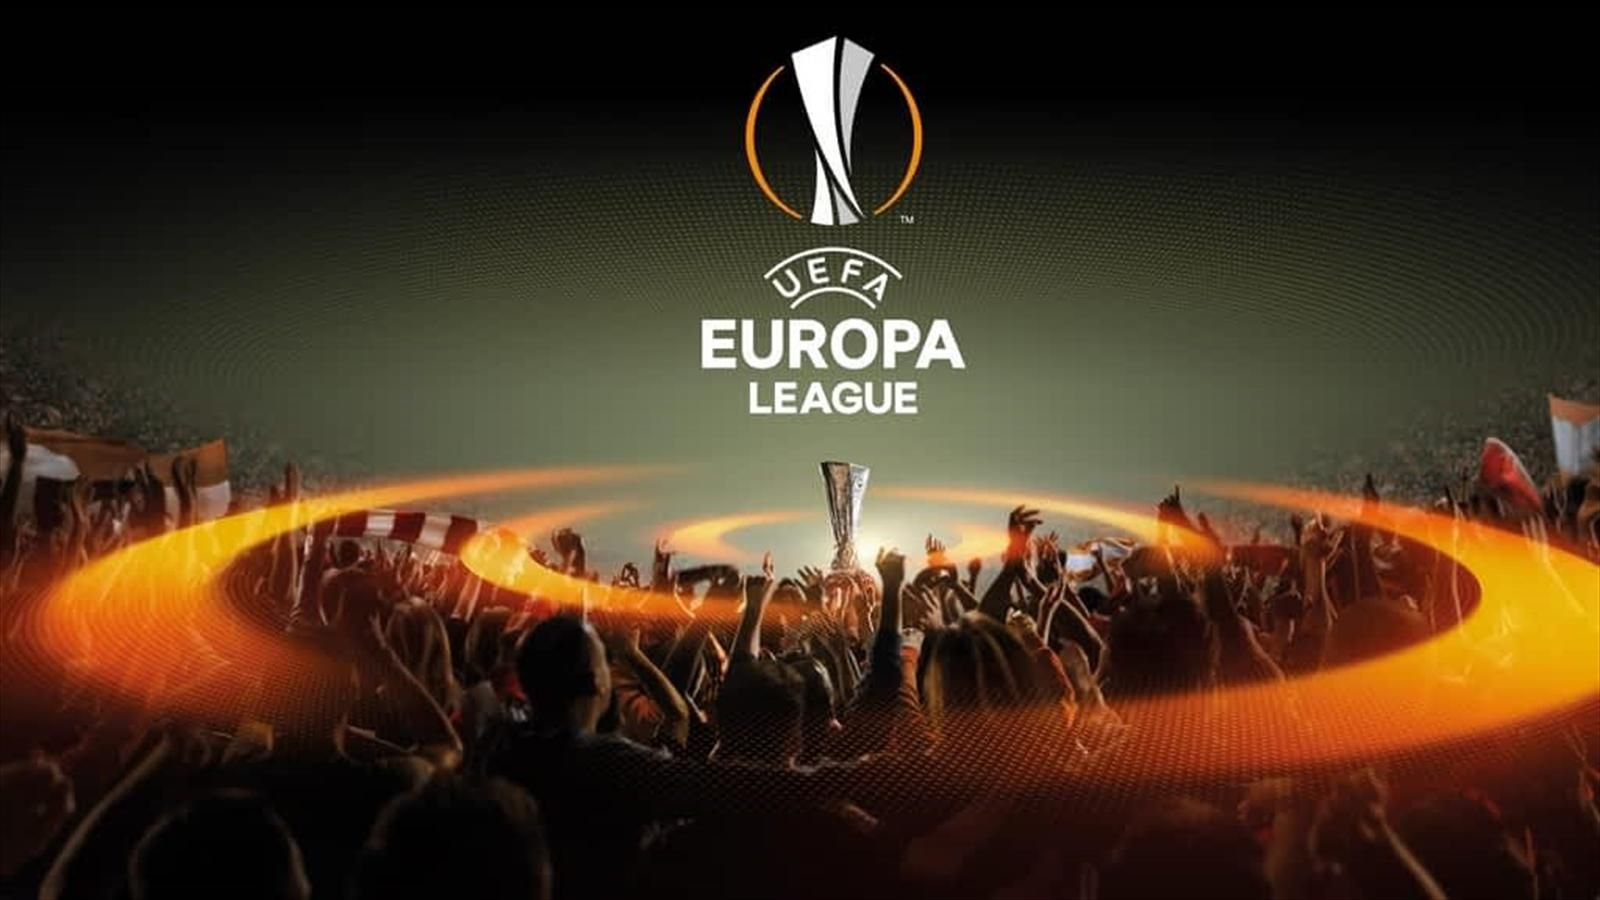 Livescore: Full Quarter Final Europa League Results